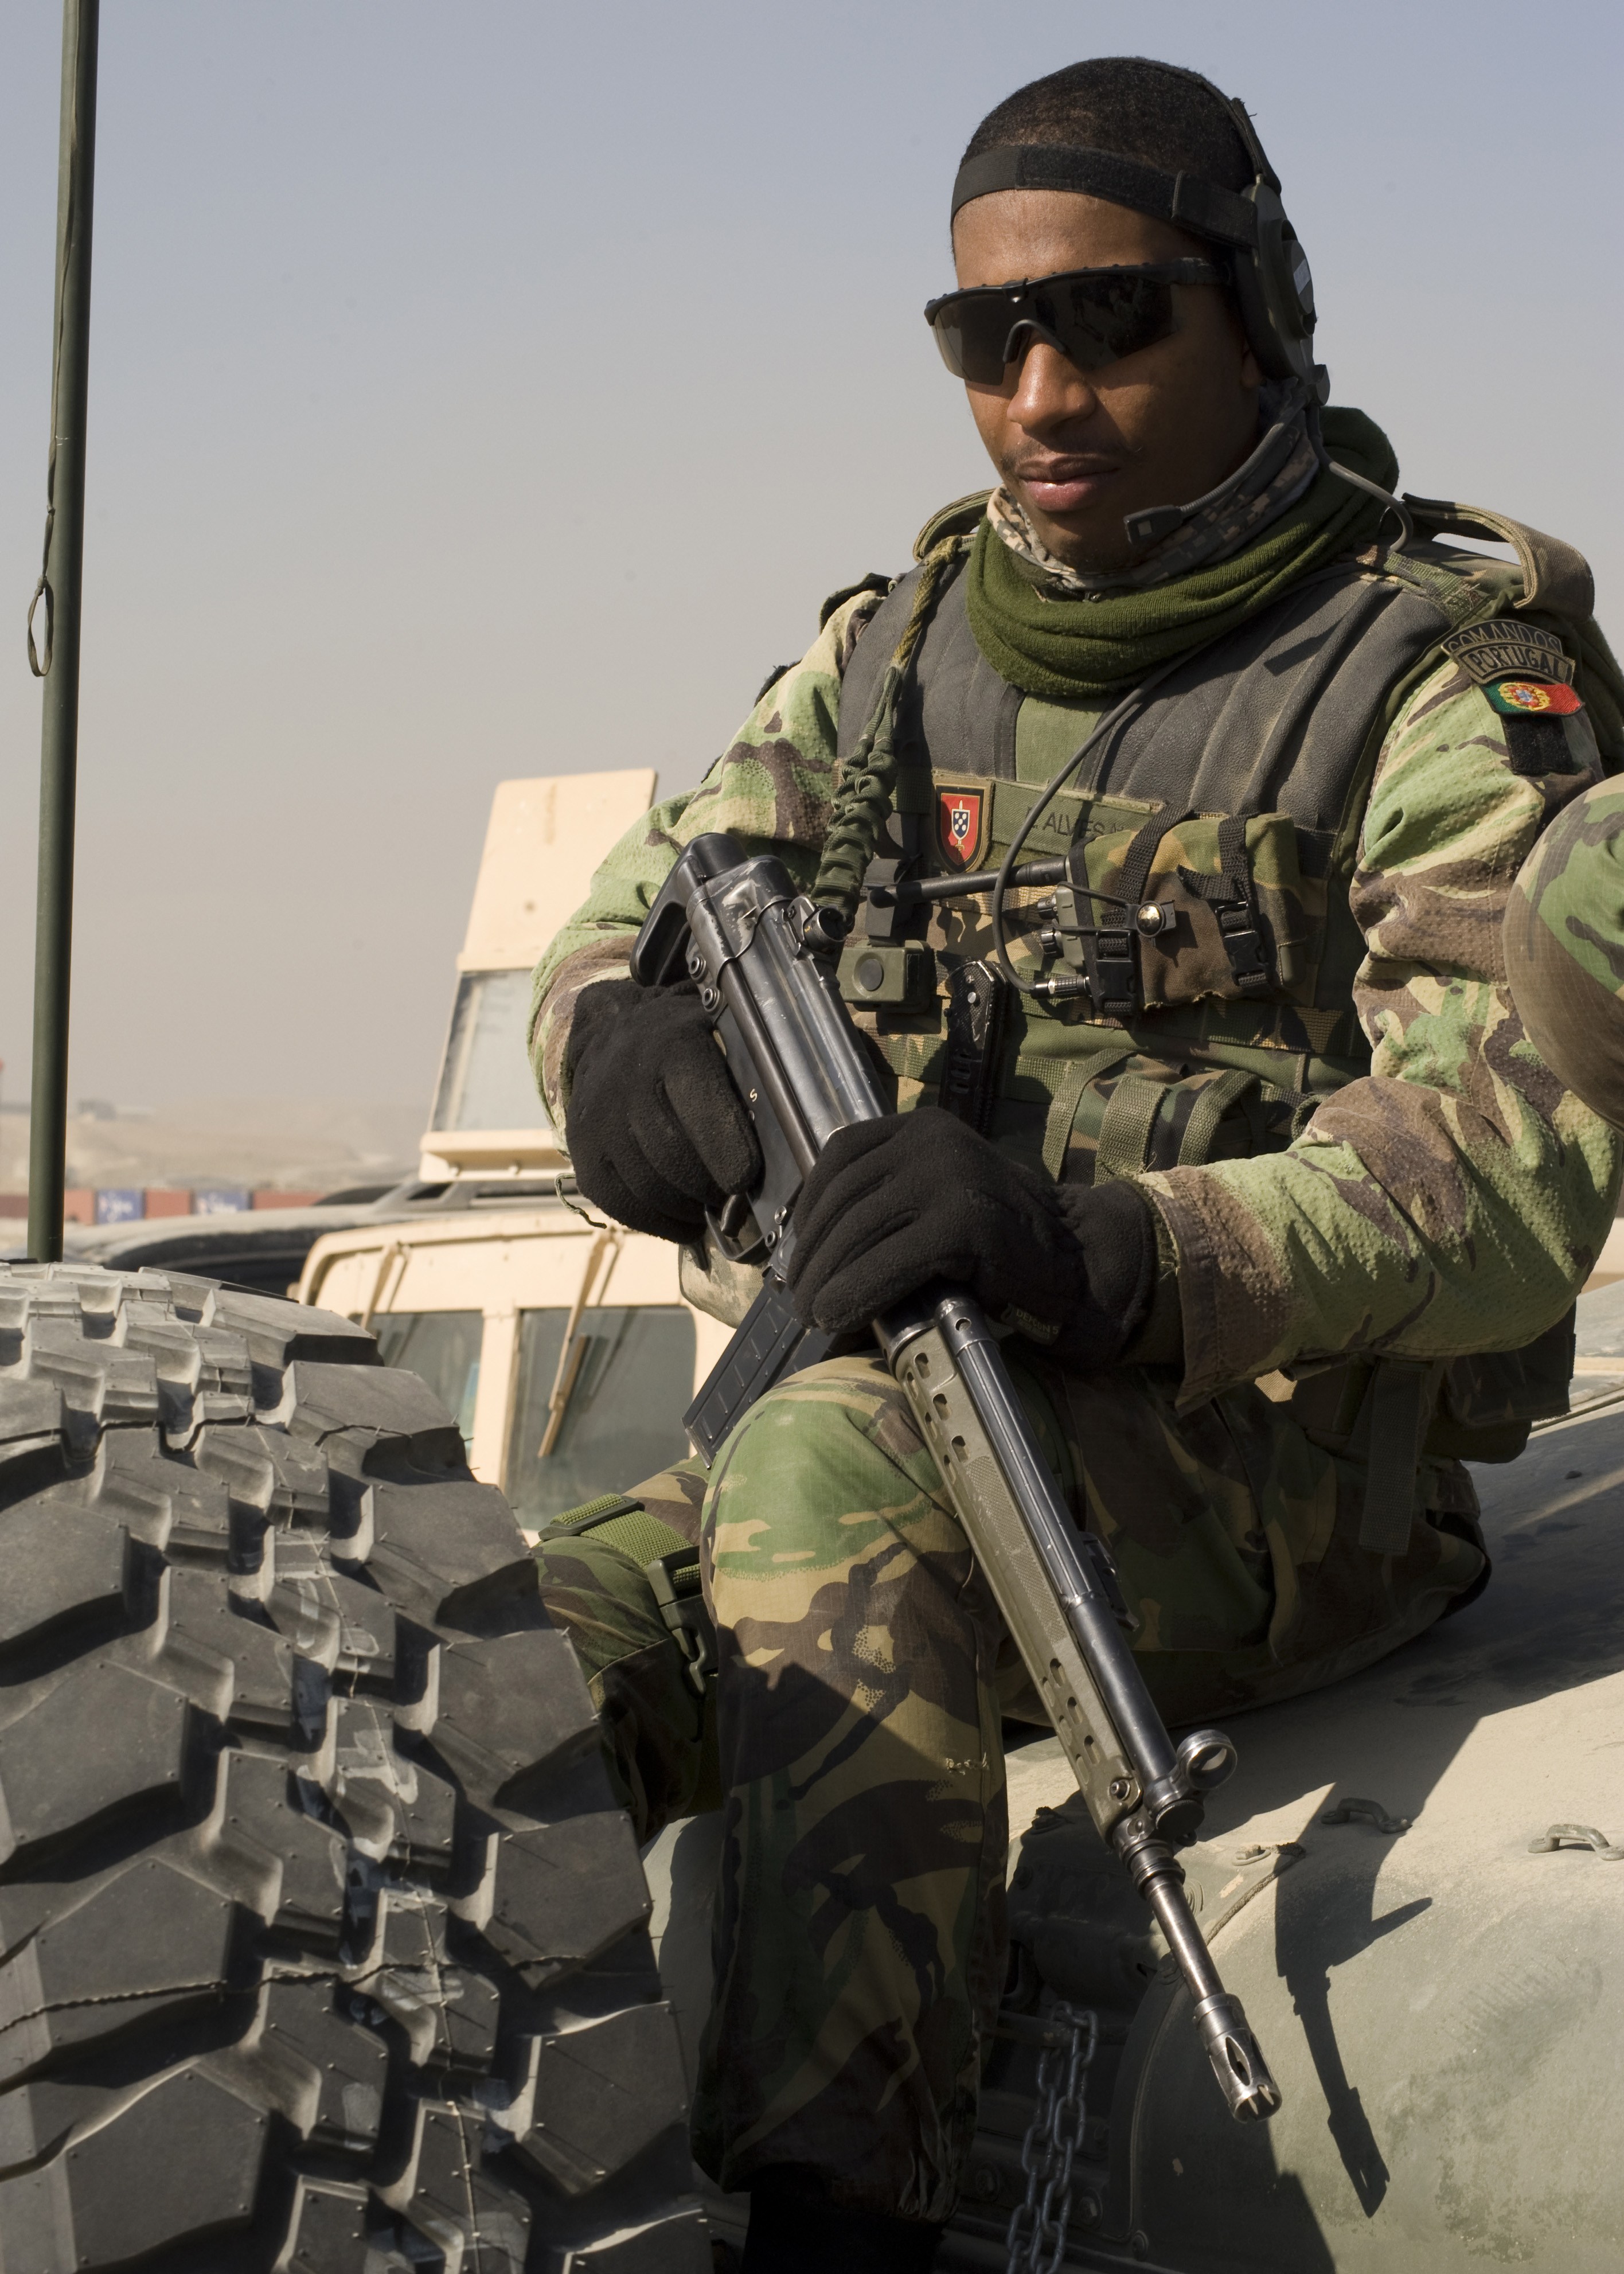 file:portuguese commandos support afghan national army - image 2 of